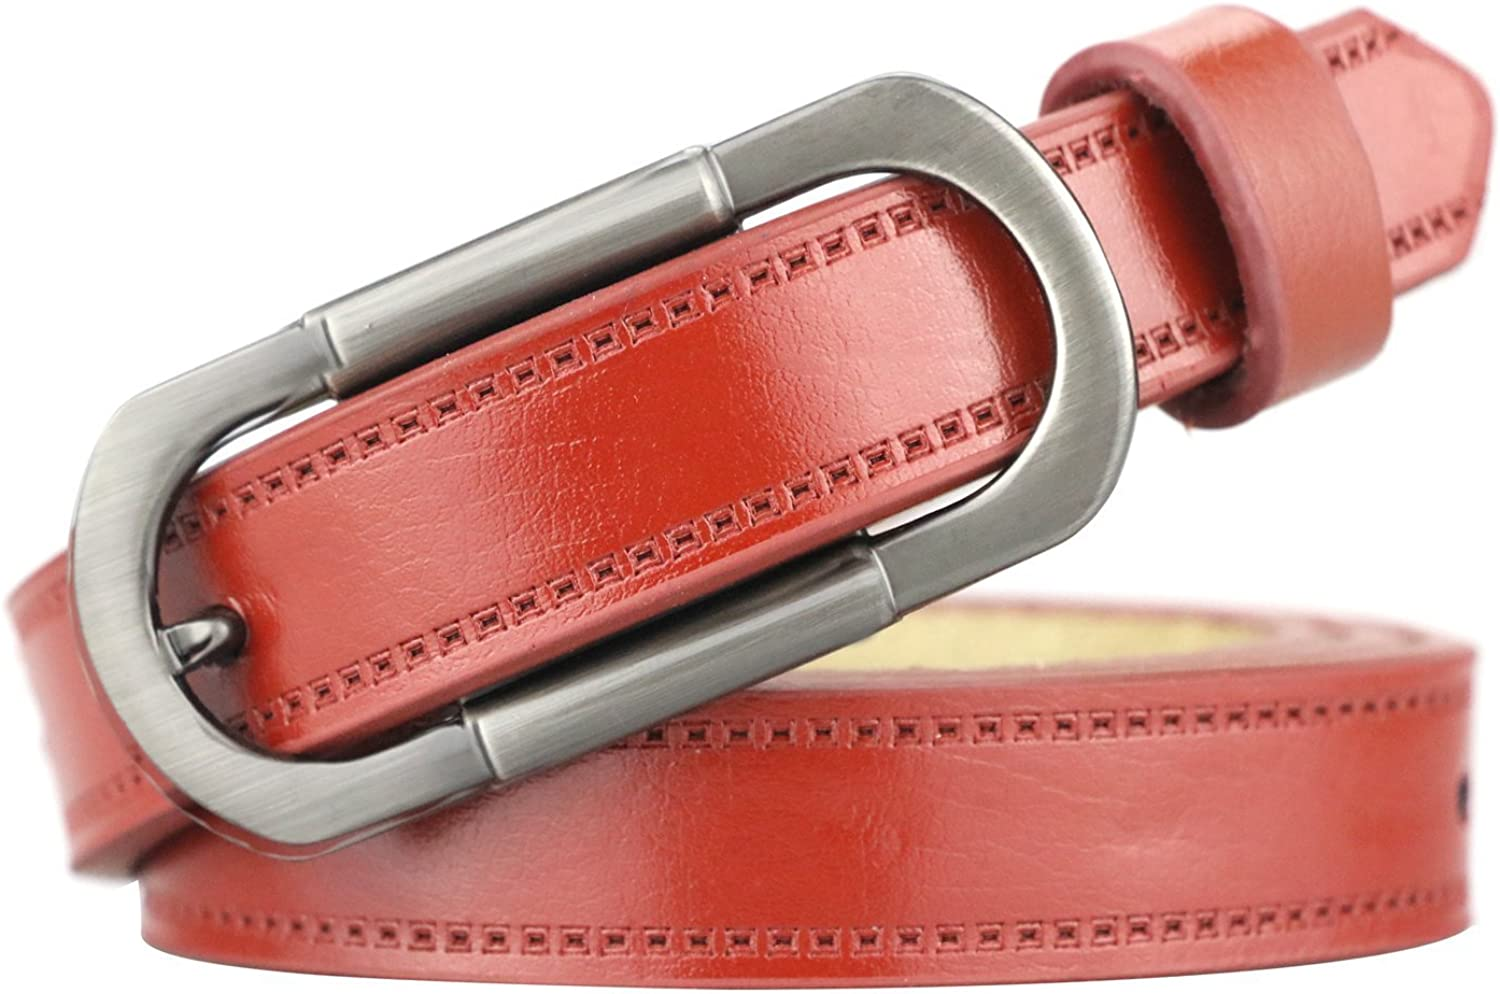 Maikun Womens Leather Skinny Belt with Double Ring Alloy Buckle Adjustable Waist for Dress Pants Valentines Day